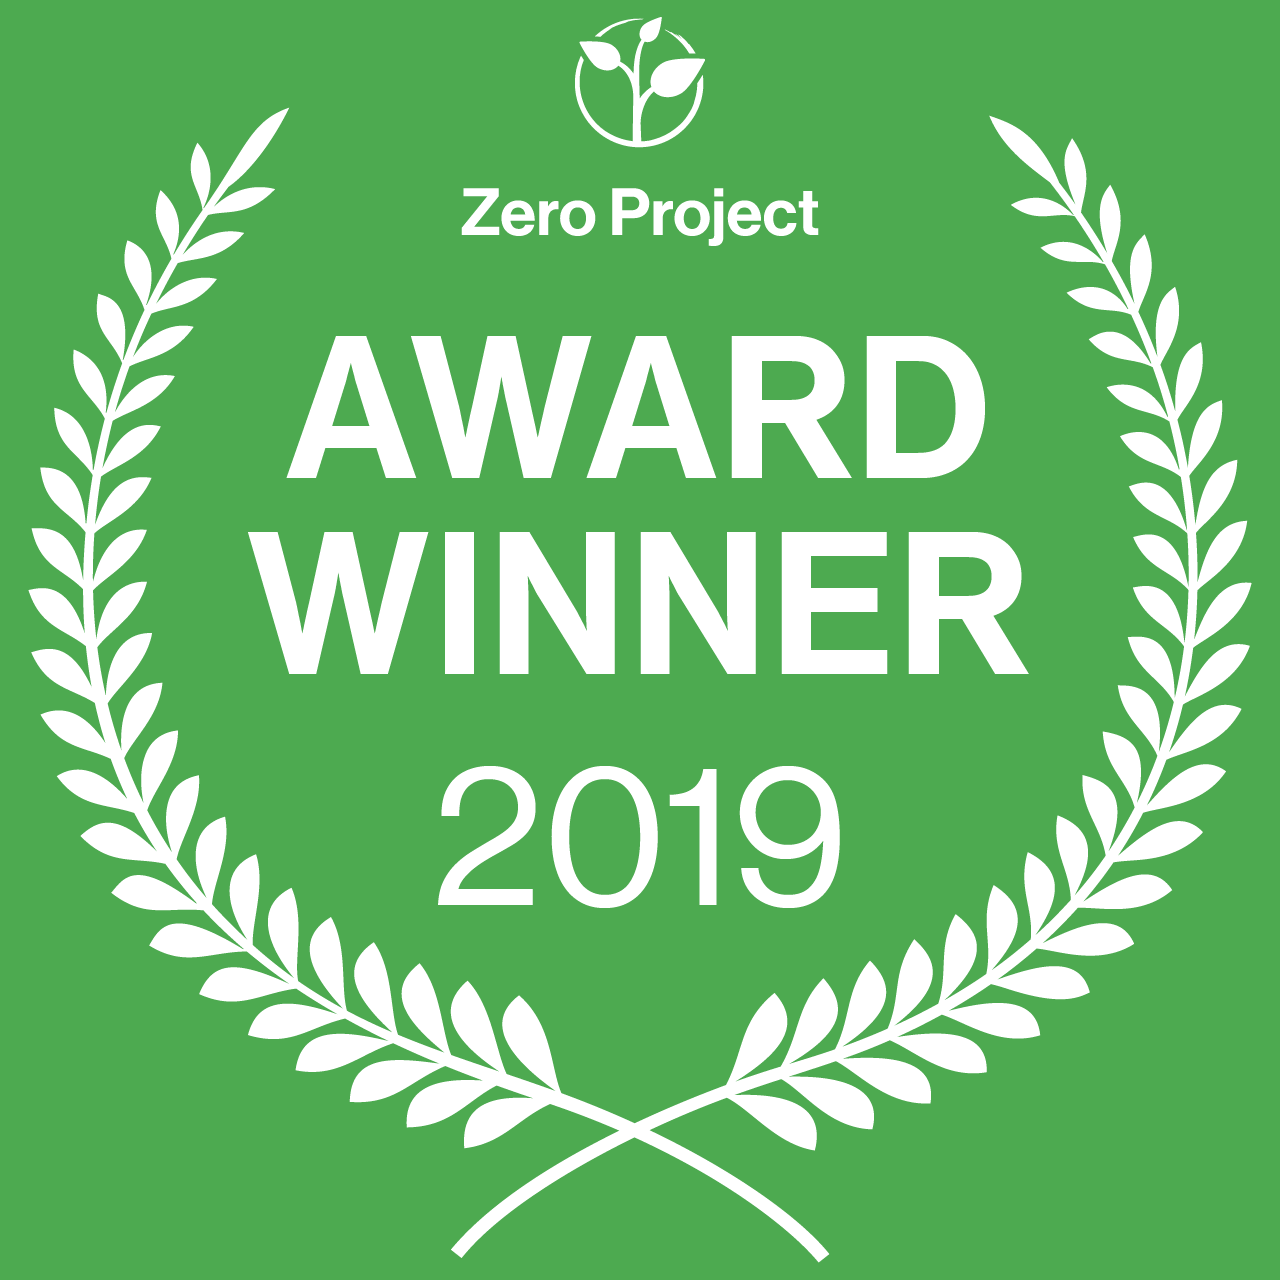 ZeroProject Award Winner